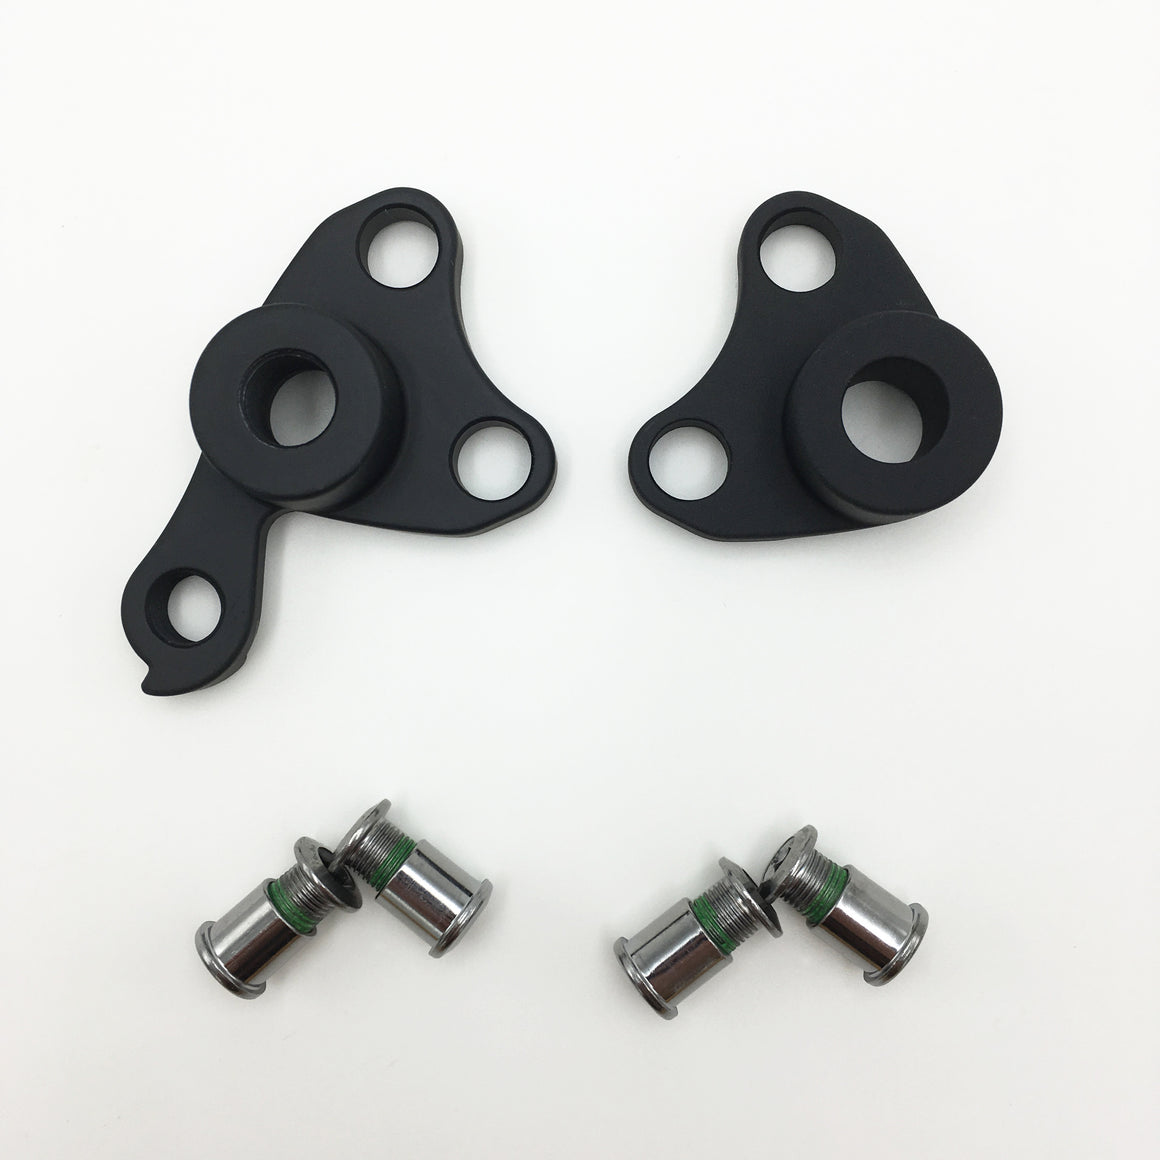 Thru-axle modular dropouts only - with/without eyelets - 142/12 - 1.0 thread pitch